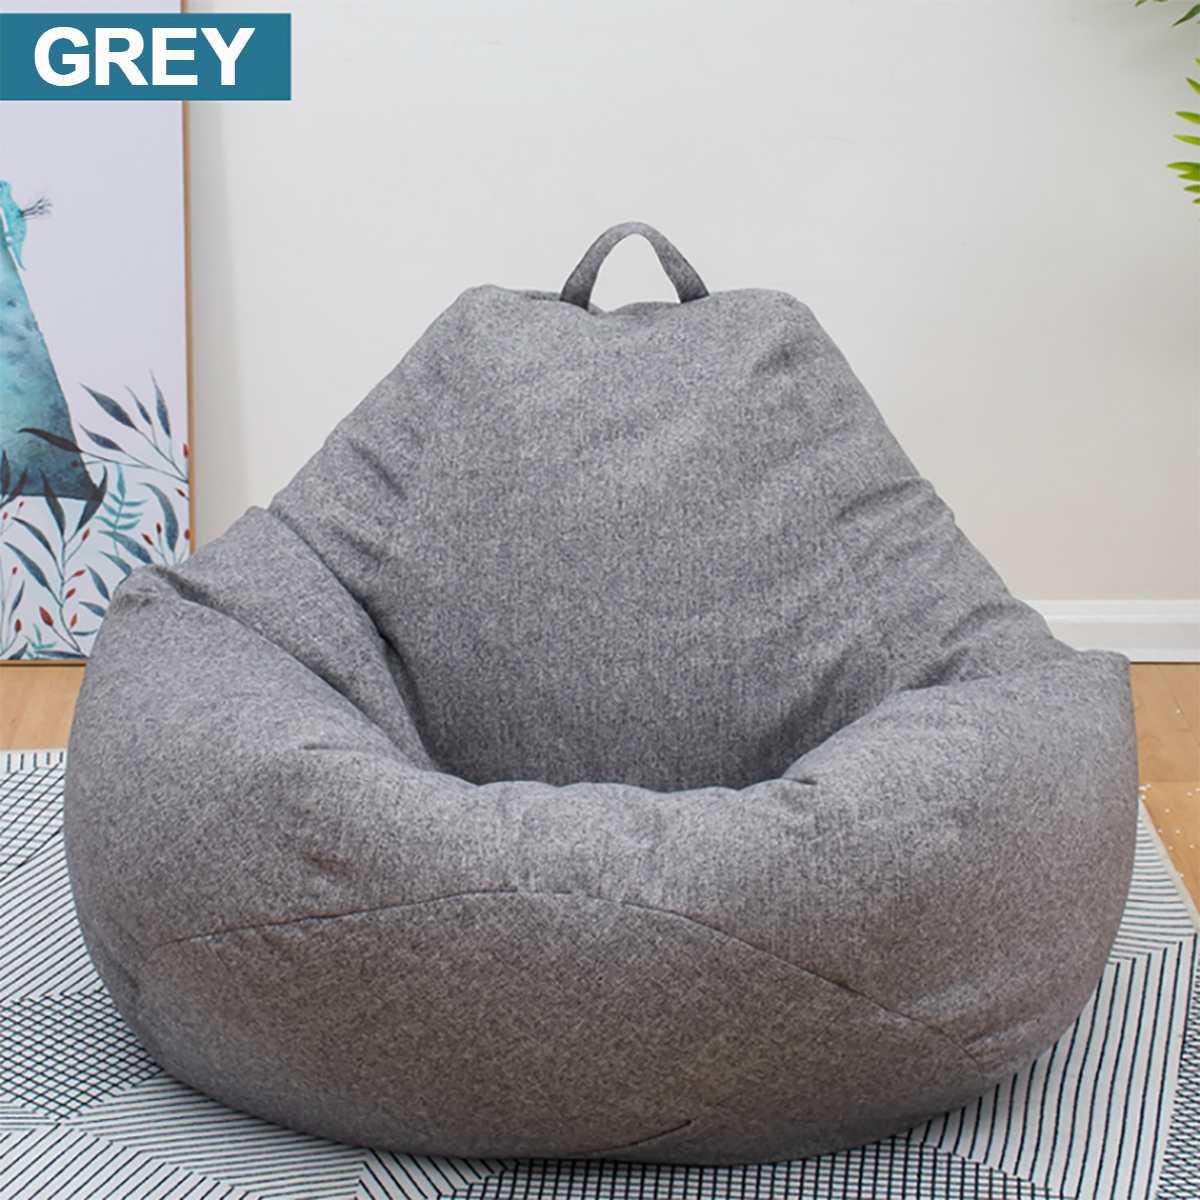 Enjoyable Details About Large Small Lazy Beanbag Sofas Cover Chairs Without Filler Linen Cloth Lounger Short Links Chair Design For Home Short Linksinfo